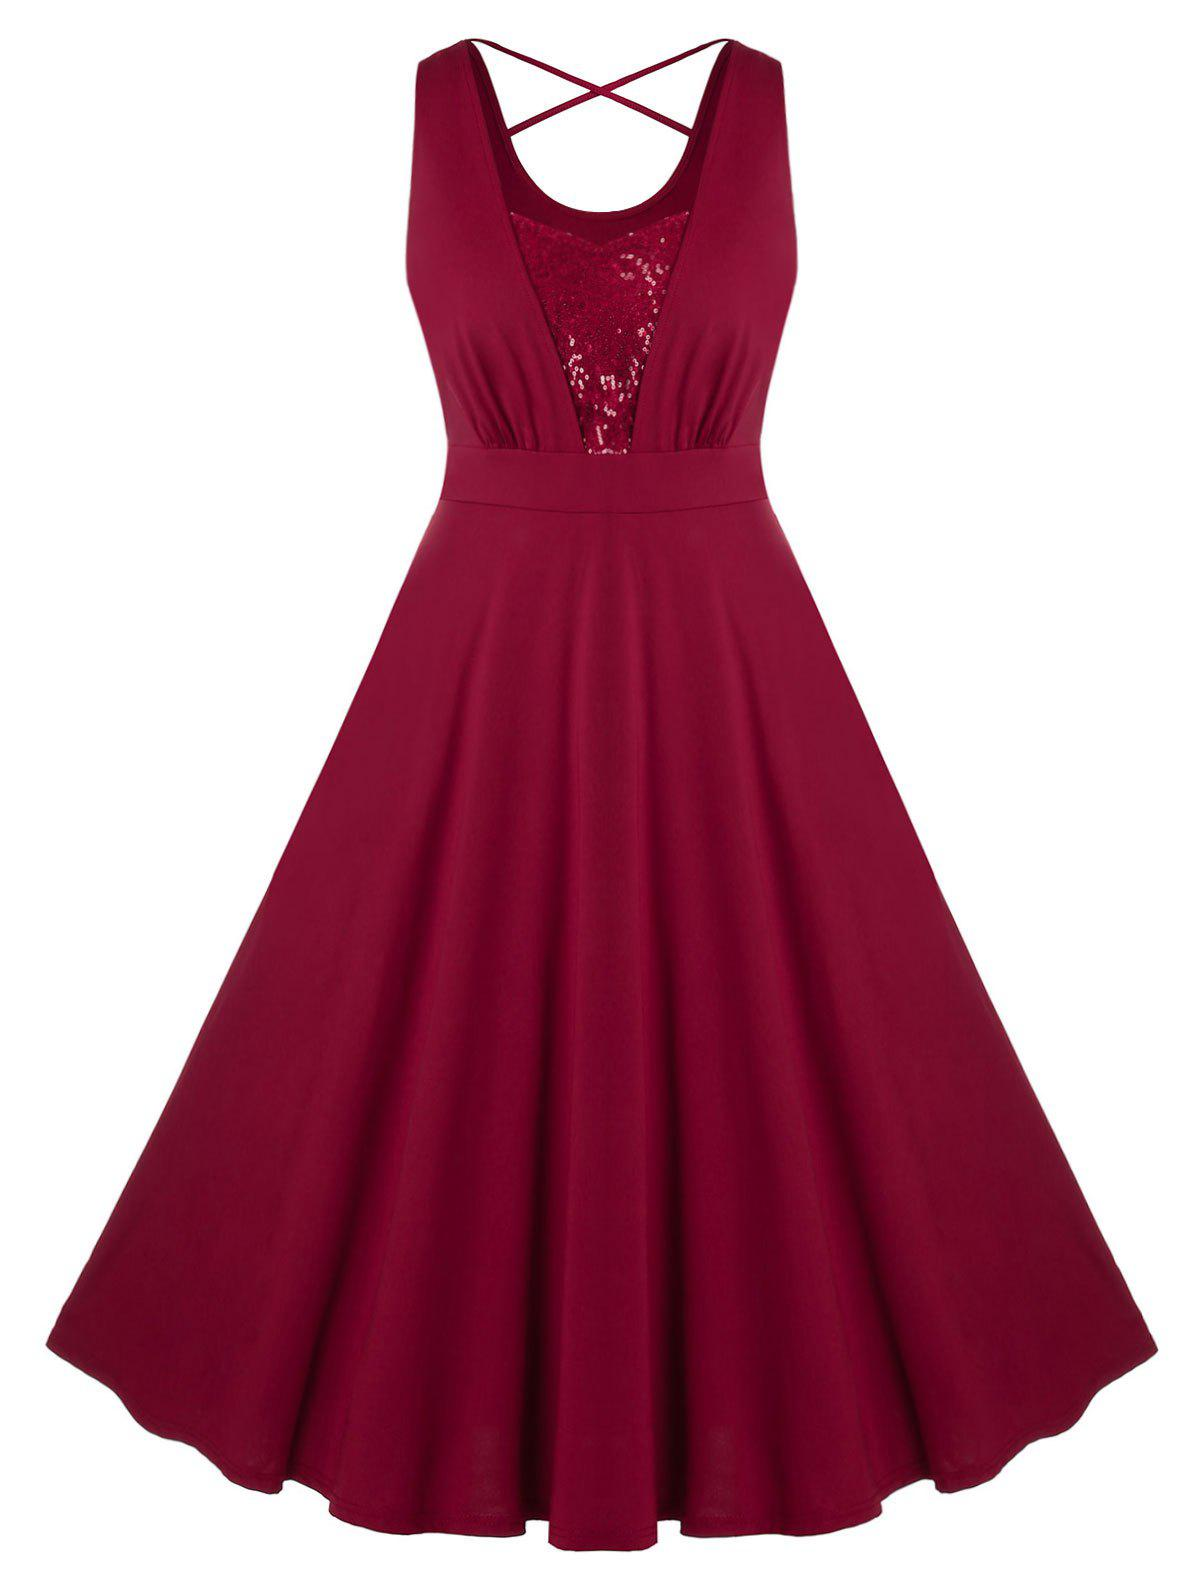 Plus Size Sequins Crisscross Sleeveless Dress - RED WINE 5X